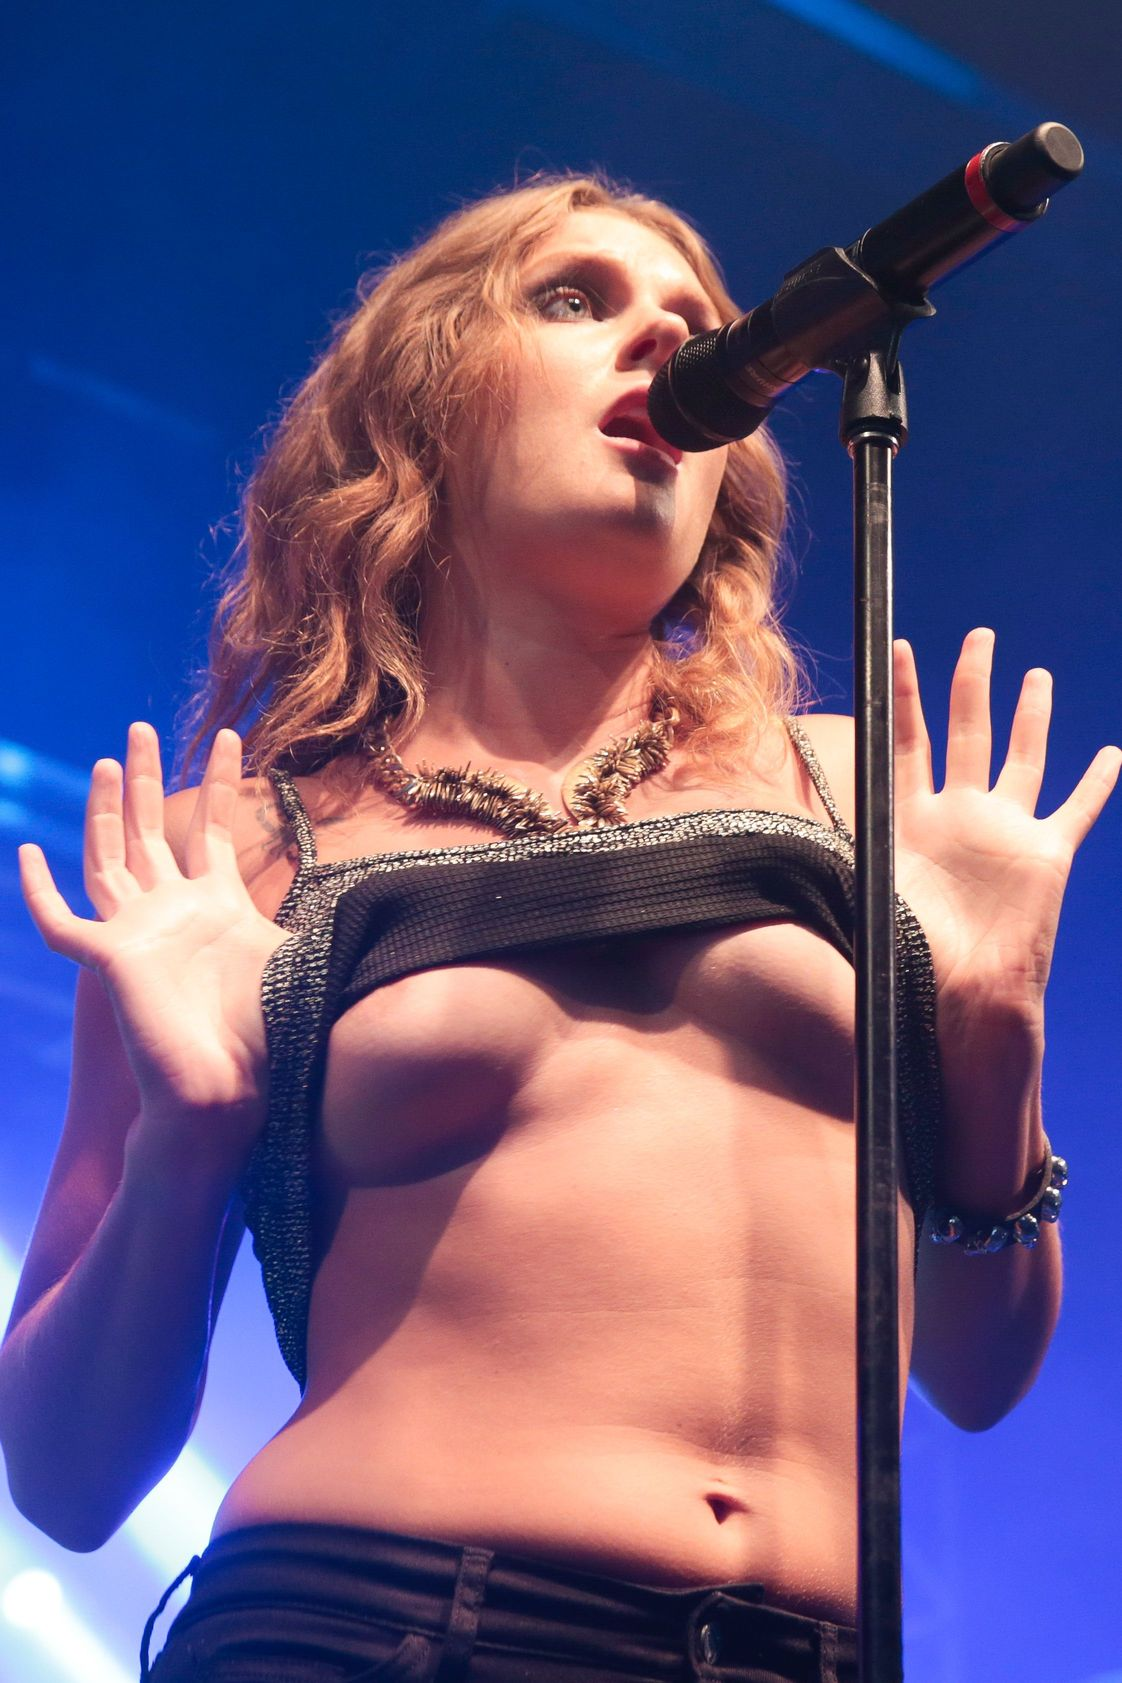 Tove Lo boobs | The Fappening. 2014-2019 celebrity photo leaks!